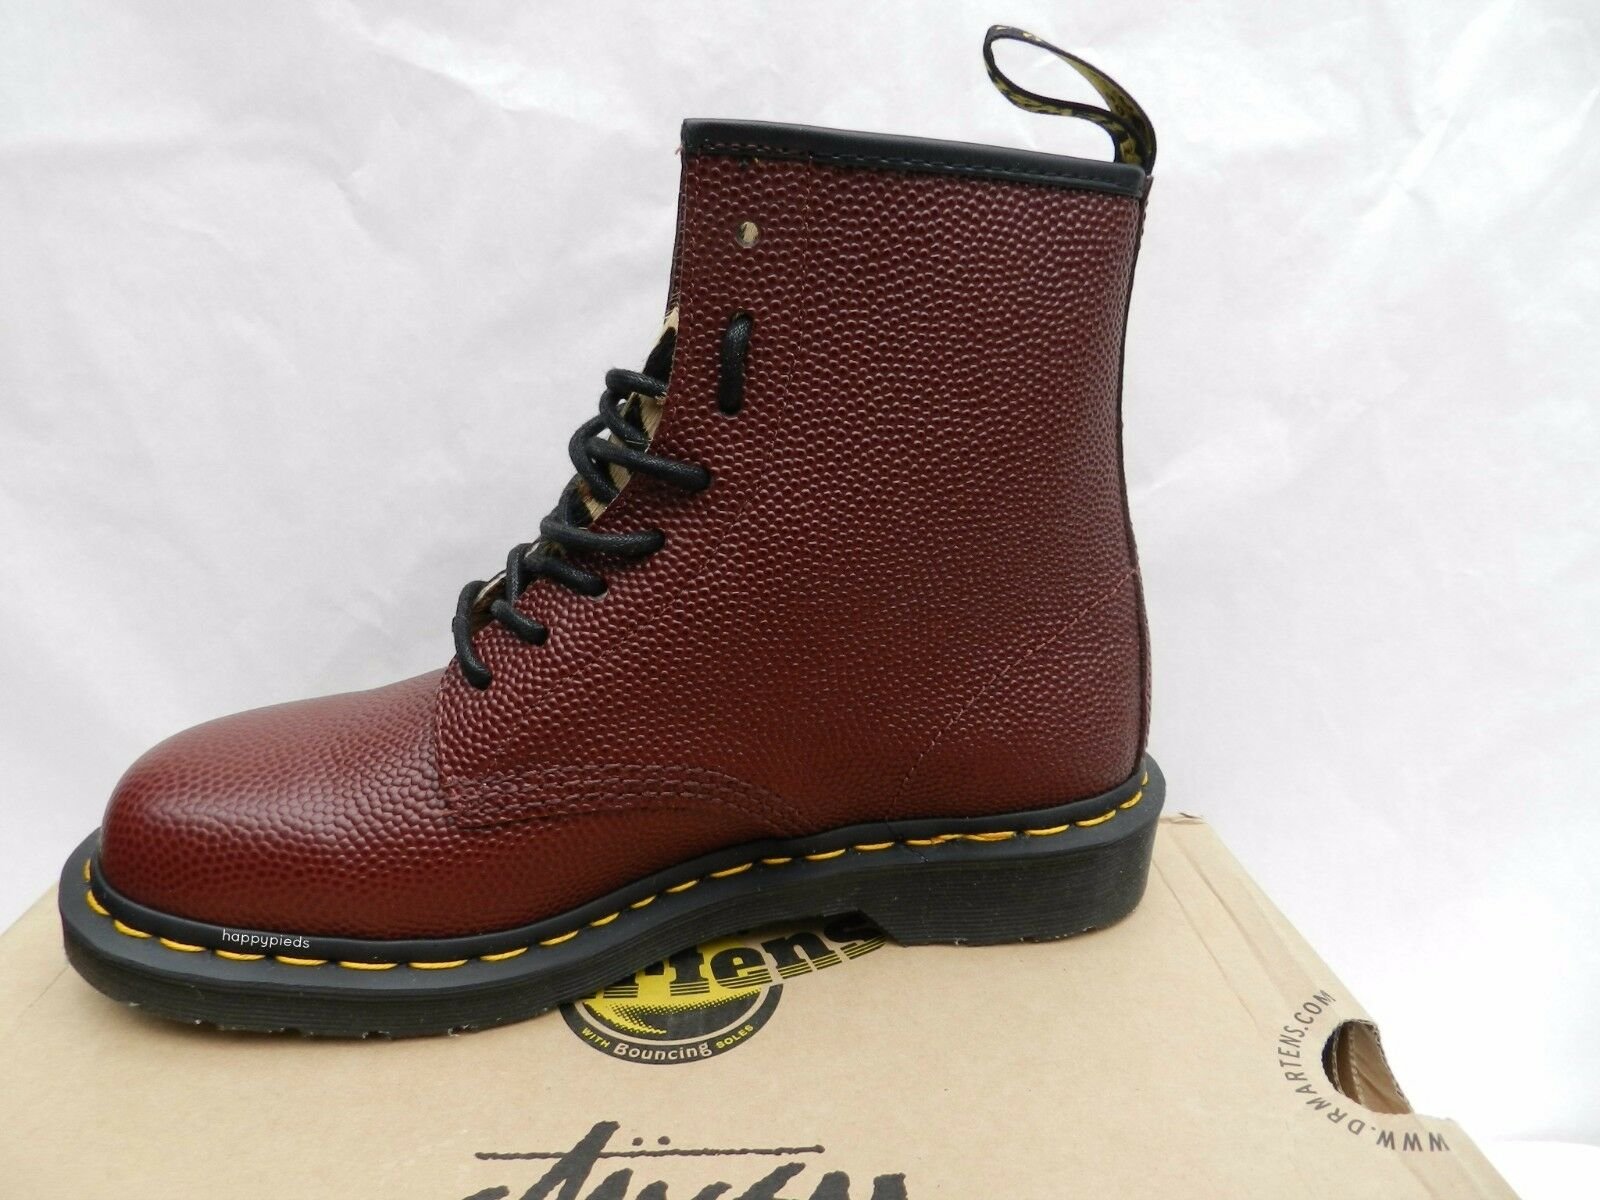 Dr Martens 1460 Stussy shoes 41 Bottes Red Cheetah Edition Limitée UK7 Neuf